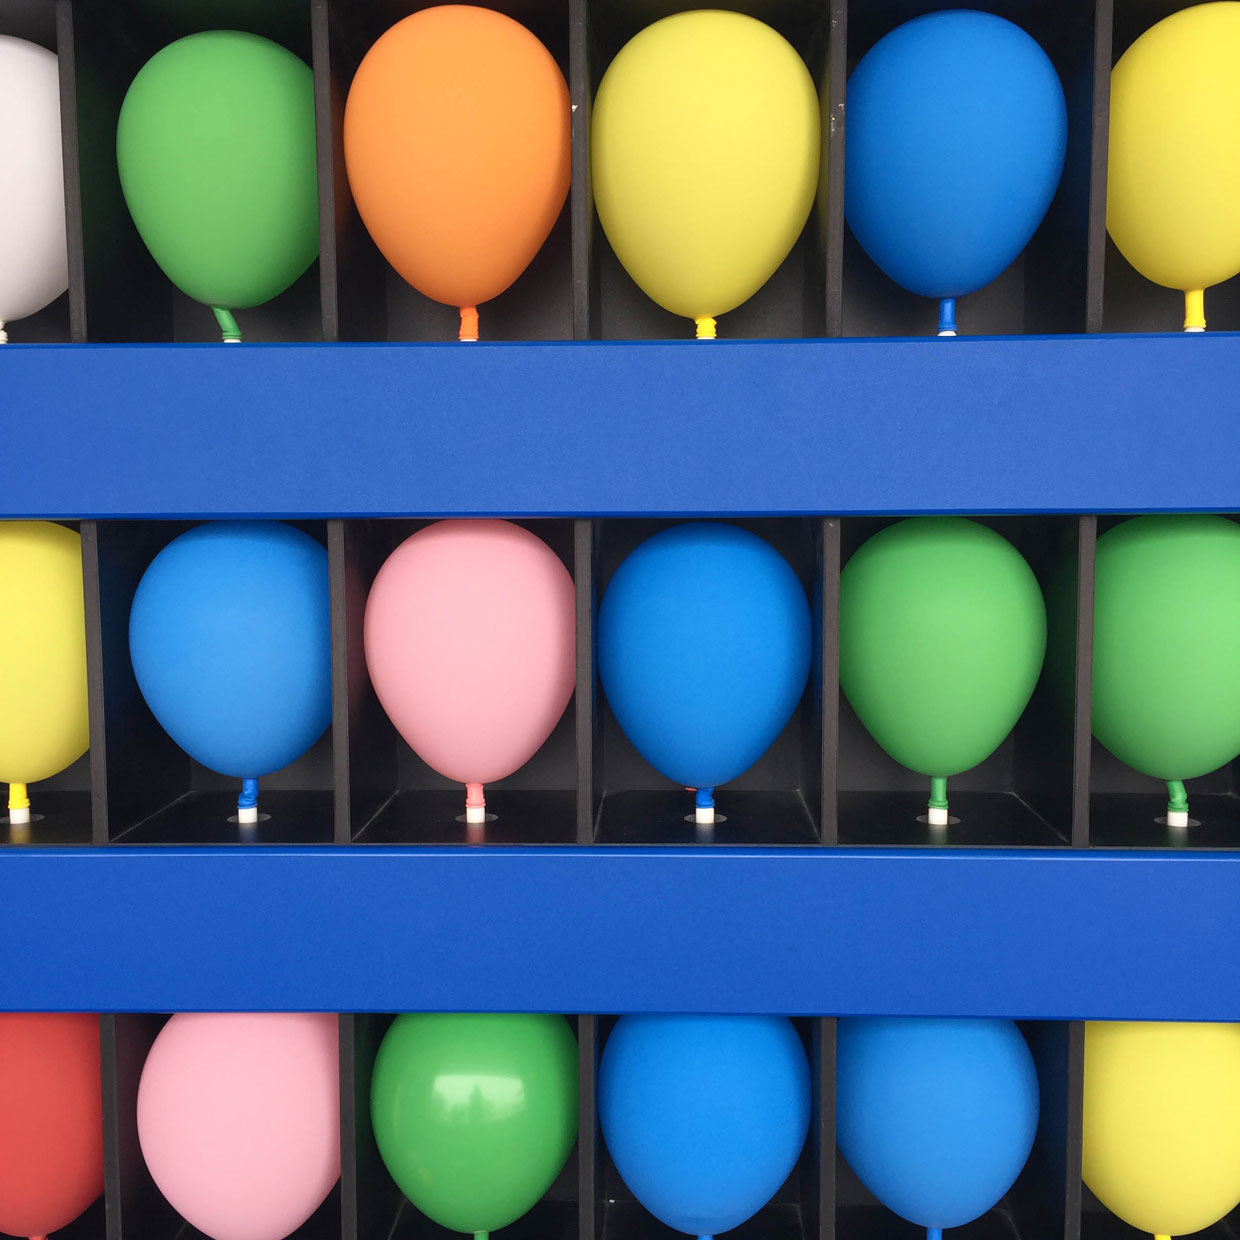 Colorful balloons in a game of chance and luck. Win a prize